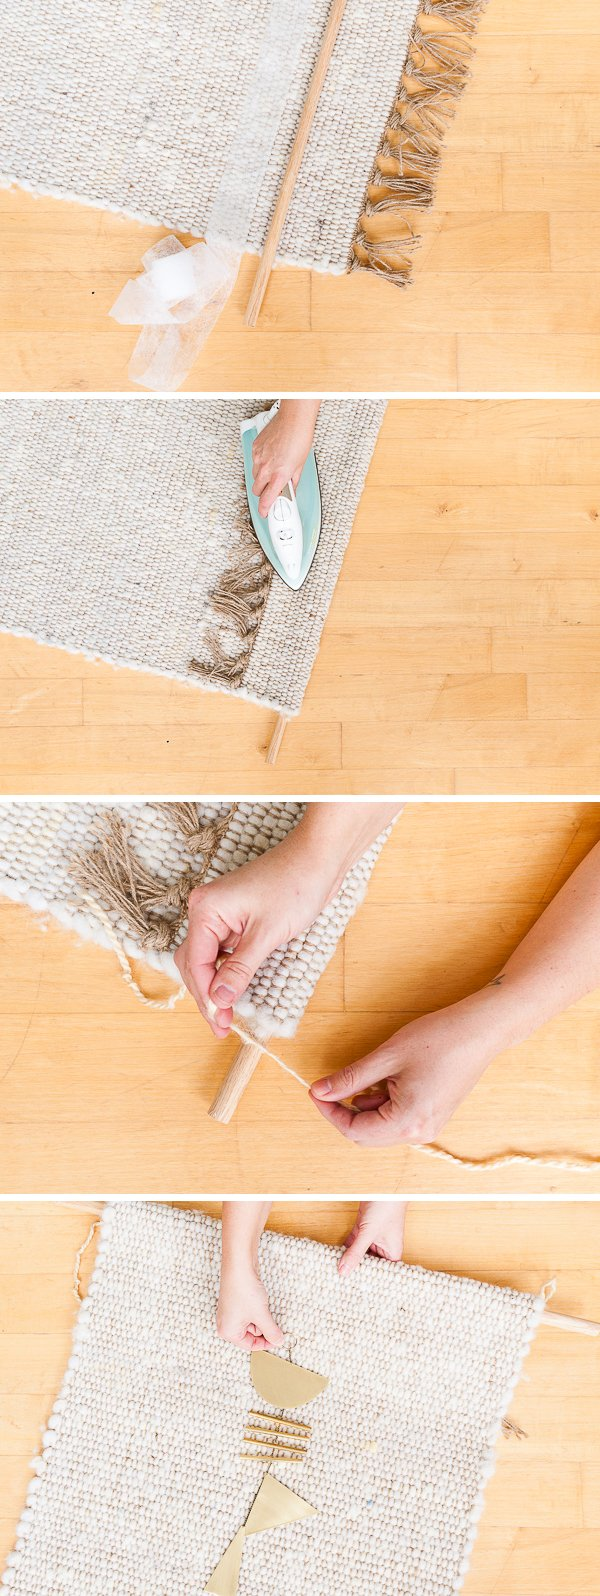 5 Minute DIY // Turn a 2x3 rRug into a Hanging Weaving